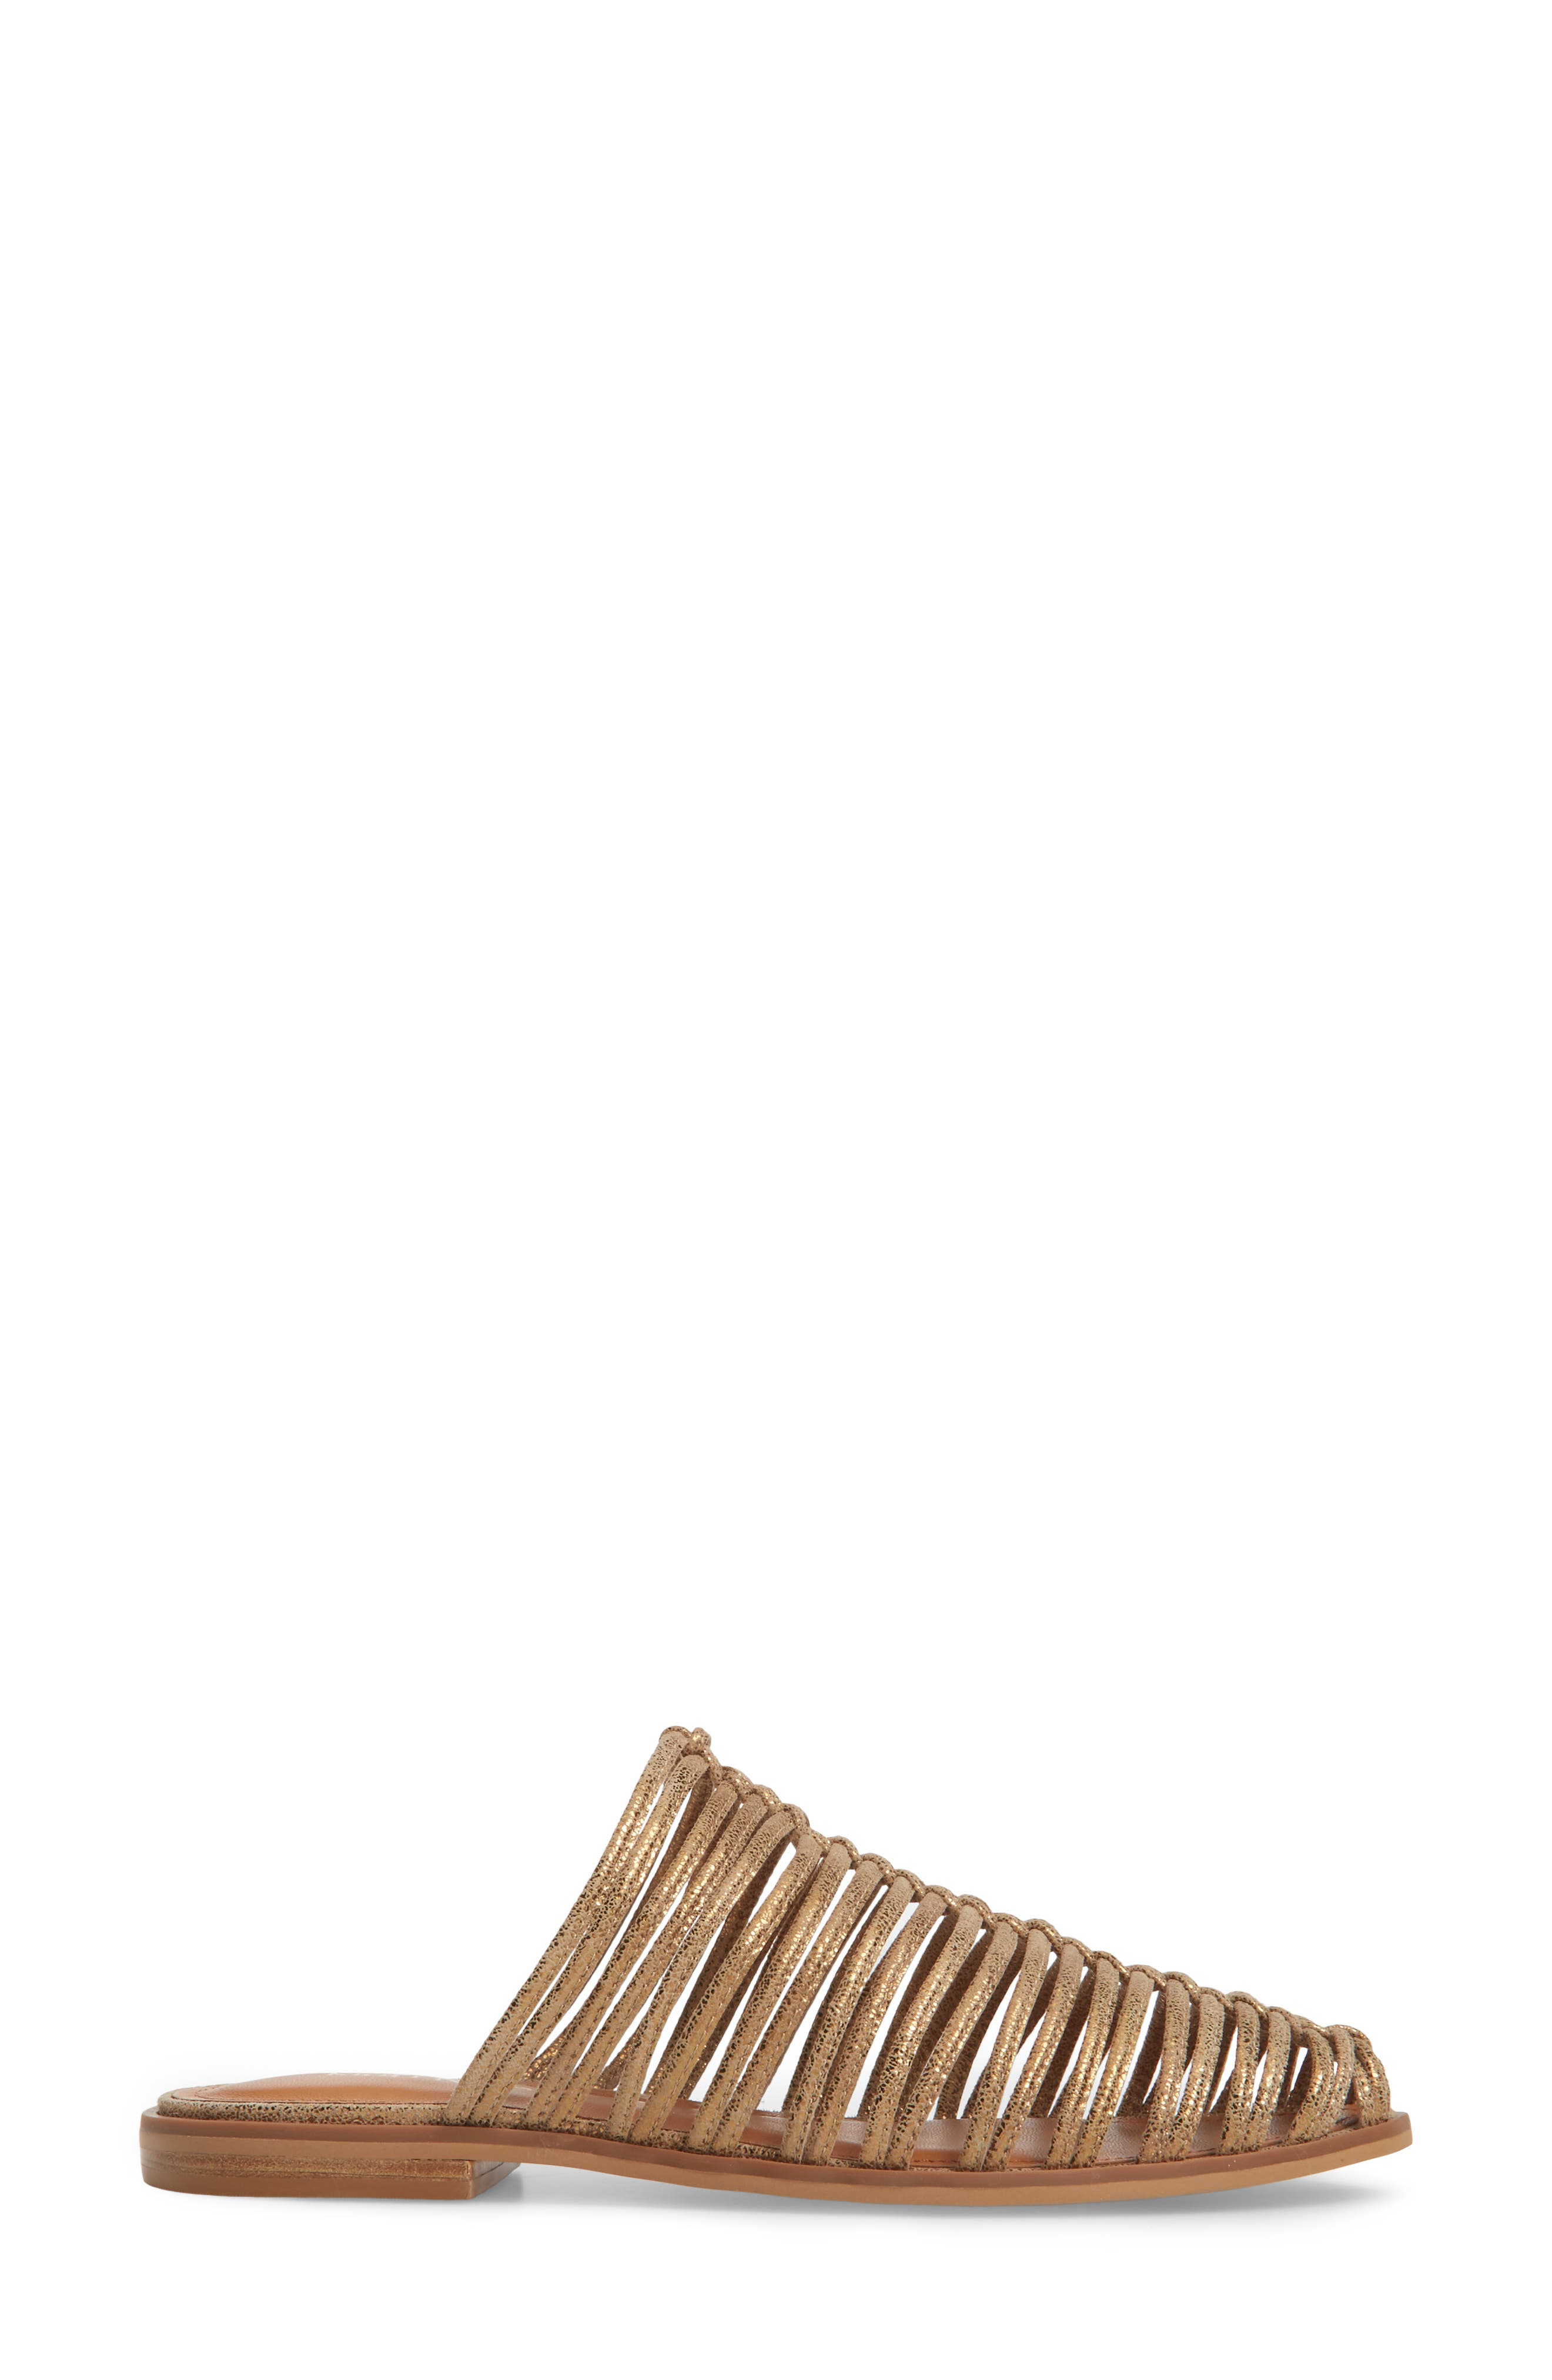 Geonna Sandal,                             Alternate thumbnail 3, color,                             Bronze Suede